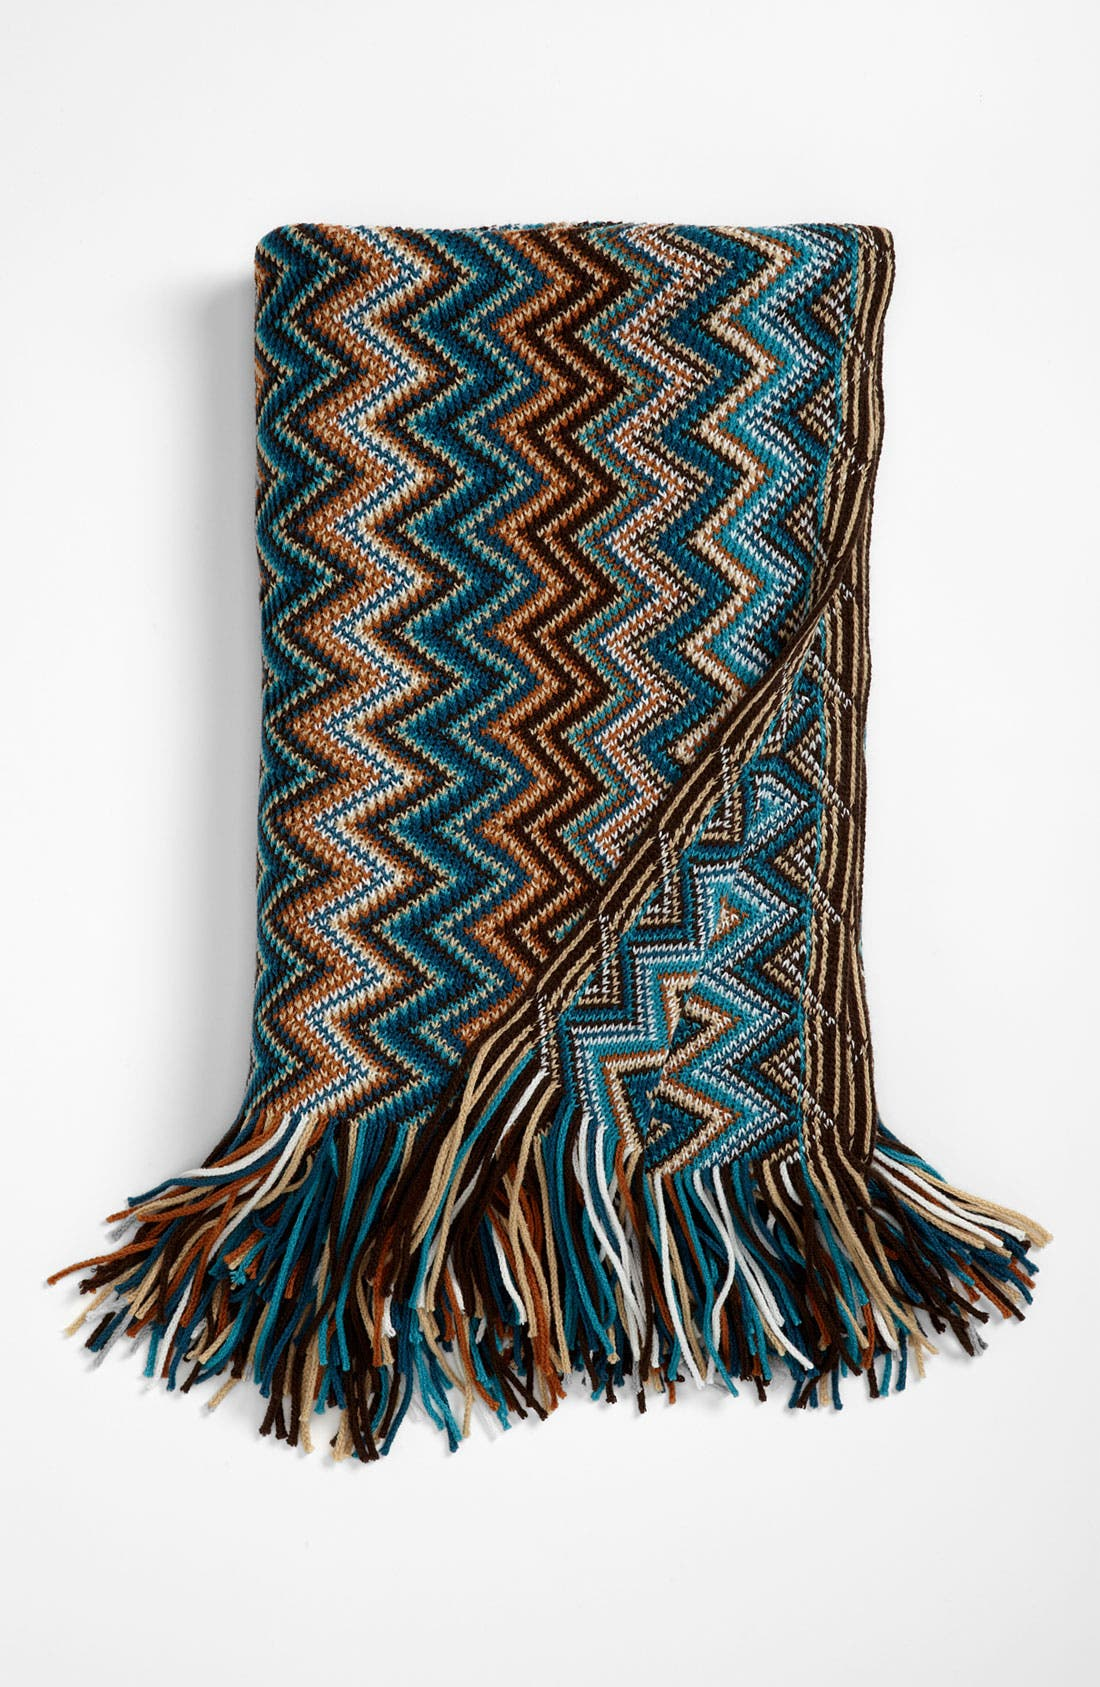 Alternate Image 1 Selected - Kennebunk Home 'Caitlin' Chevron Knit Throw